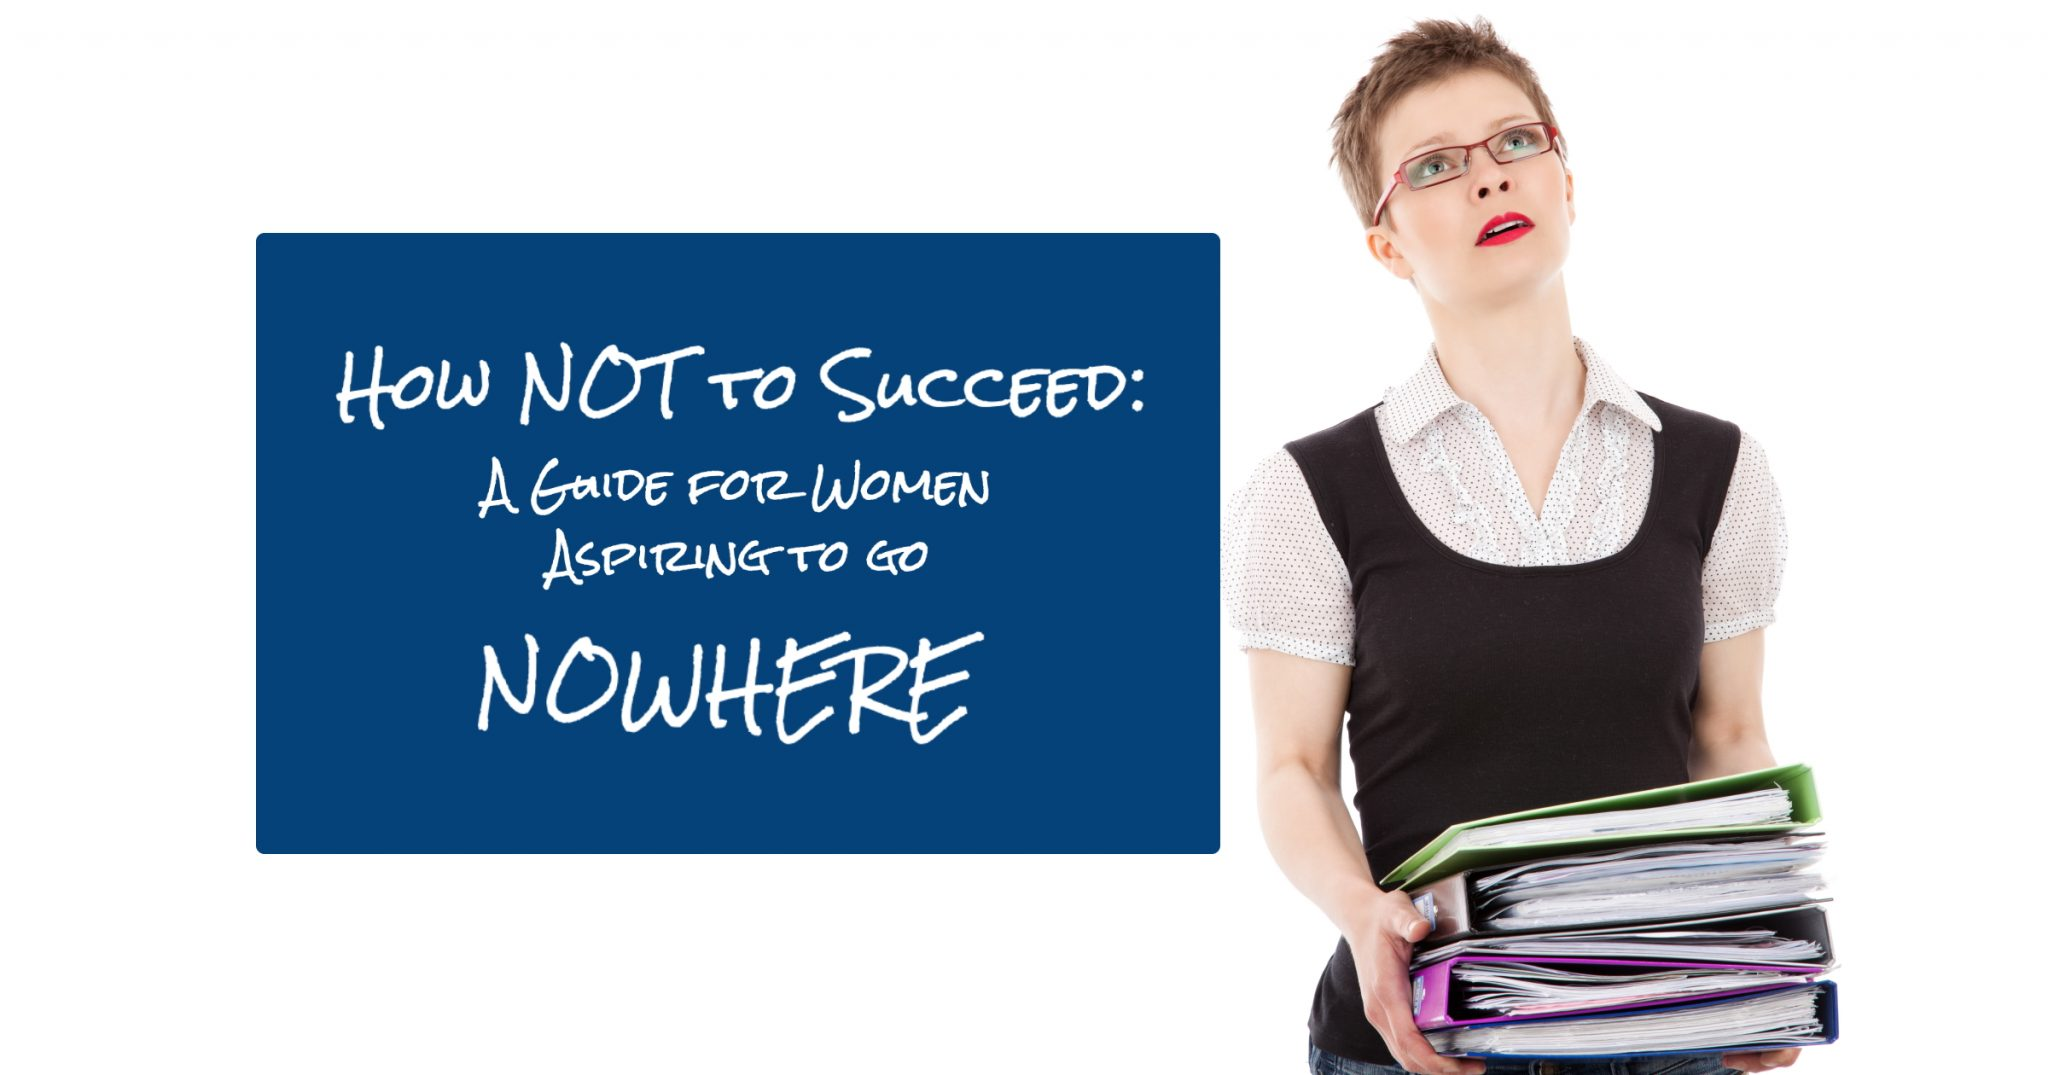 How NOT to Succeed in Your Career - A guide for women working in office settings and aspiring to go nowhere 9